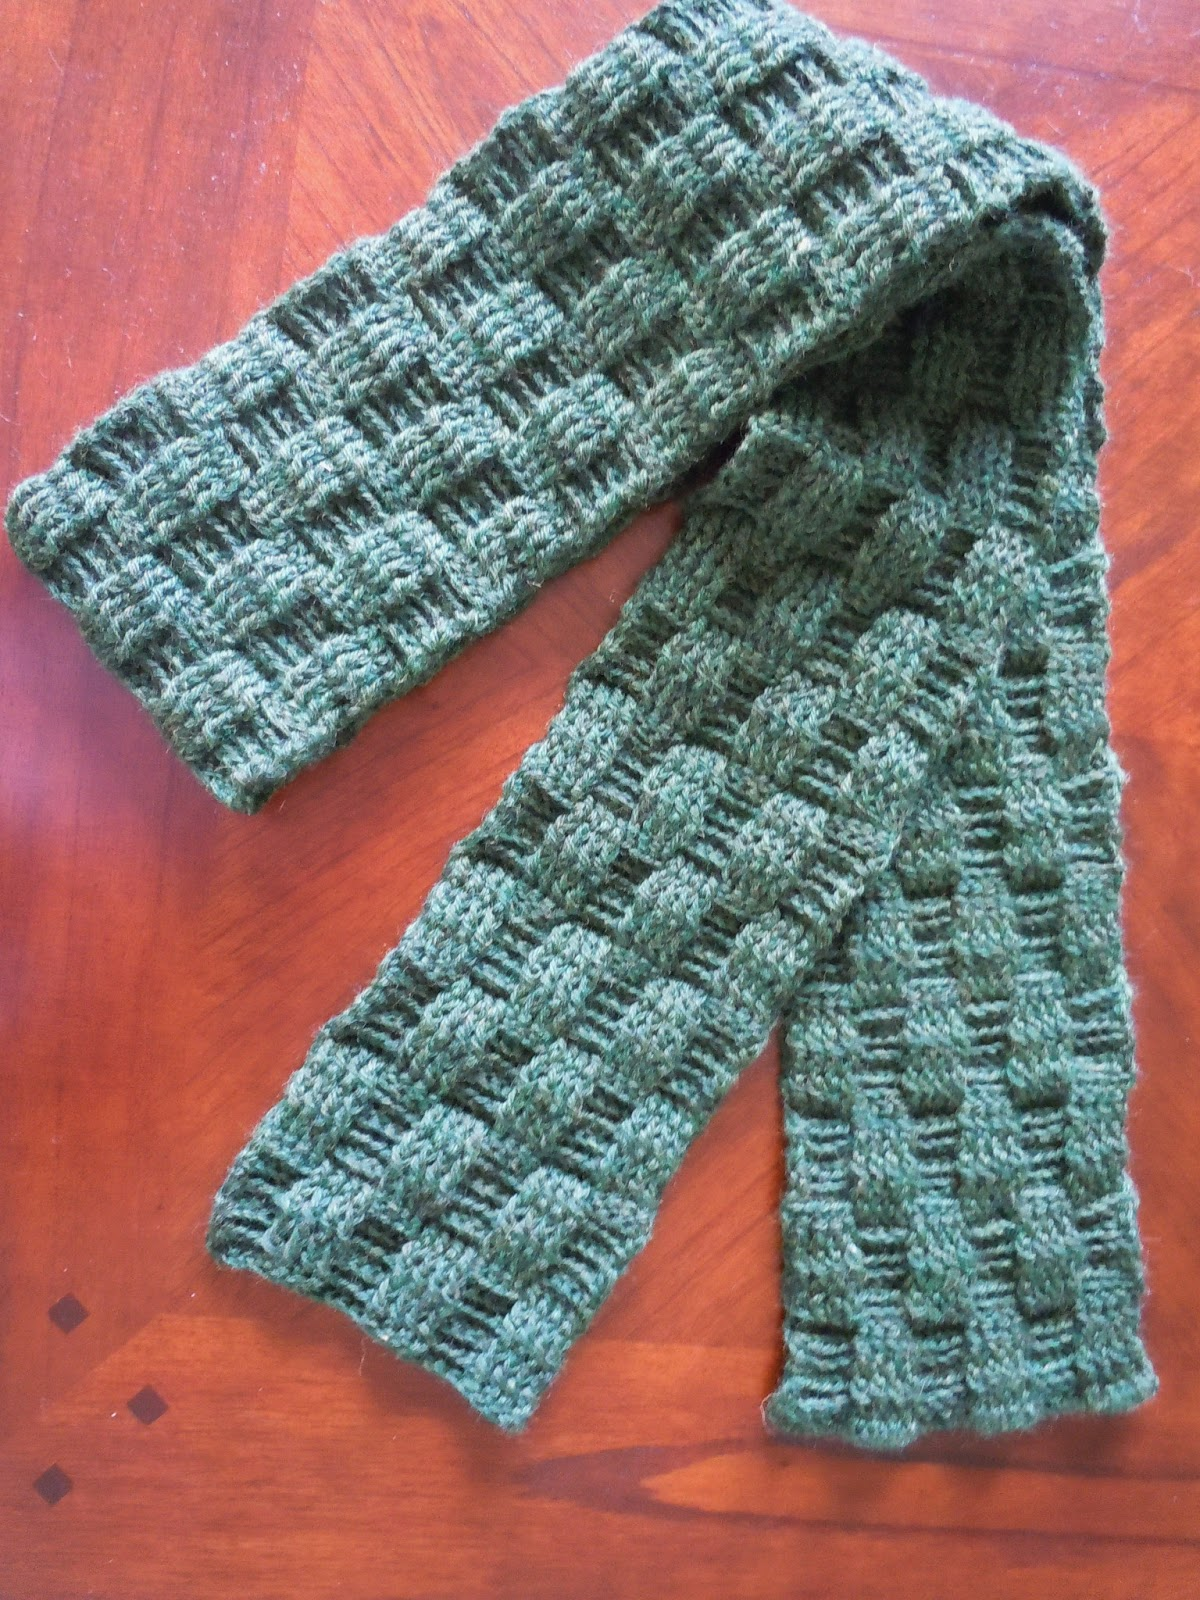 Free Knitting Pattern For Basket Weave Scarf : Illuminate Crochet: Mens Crochet and Basketweave Scarf